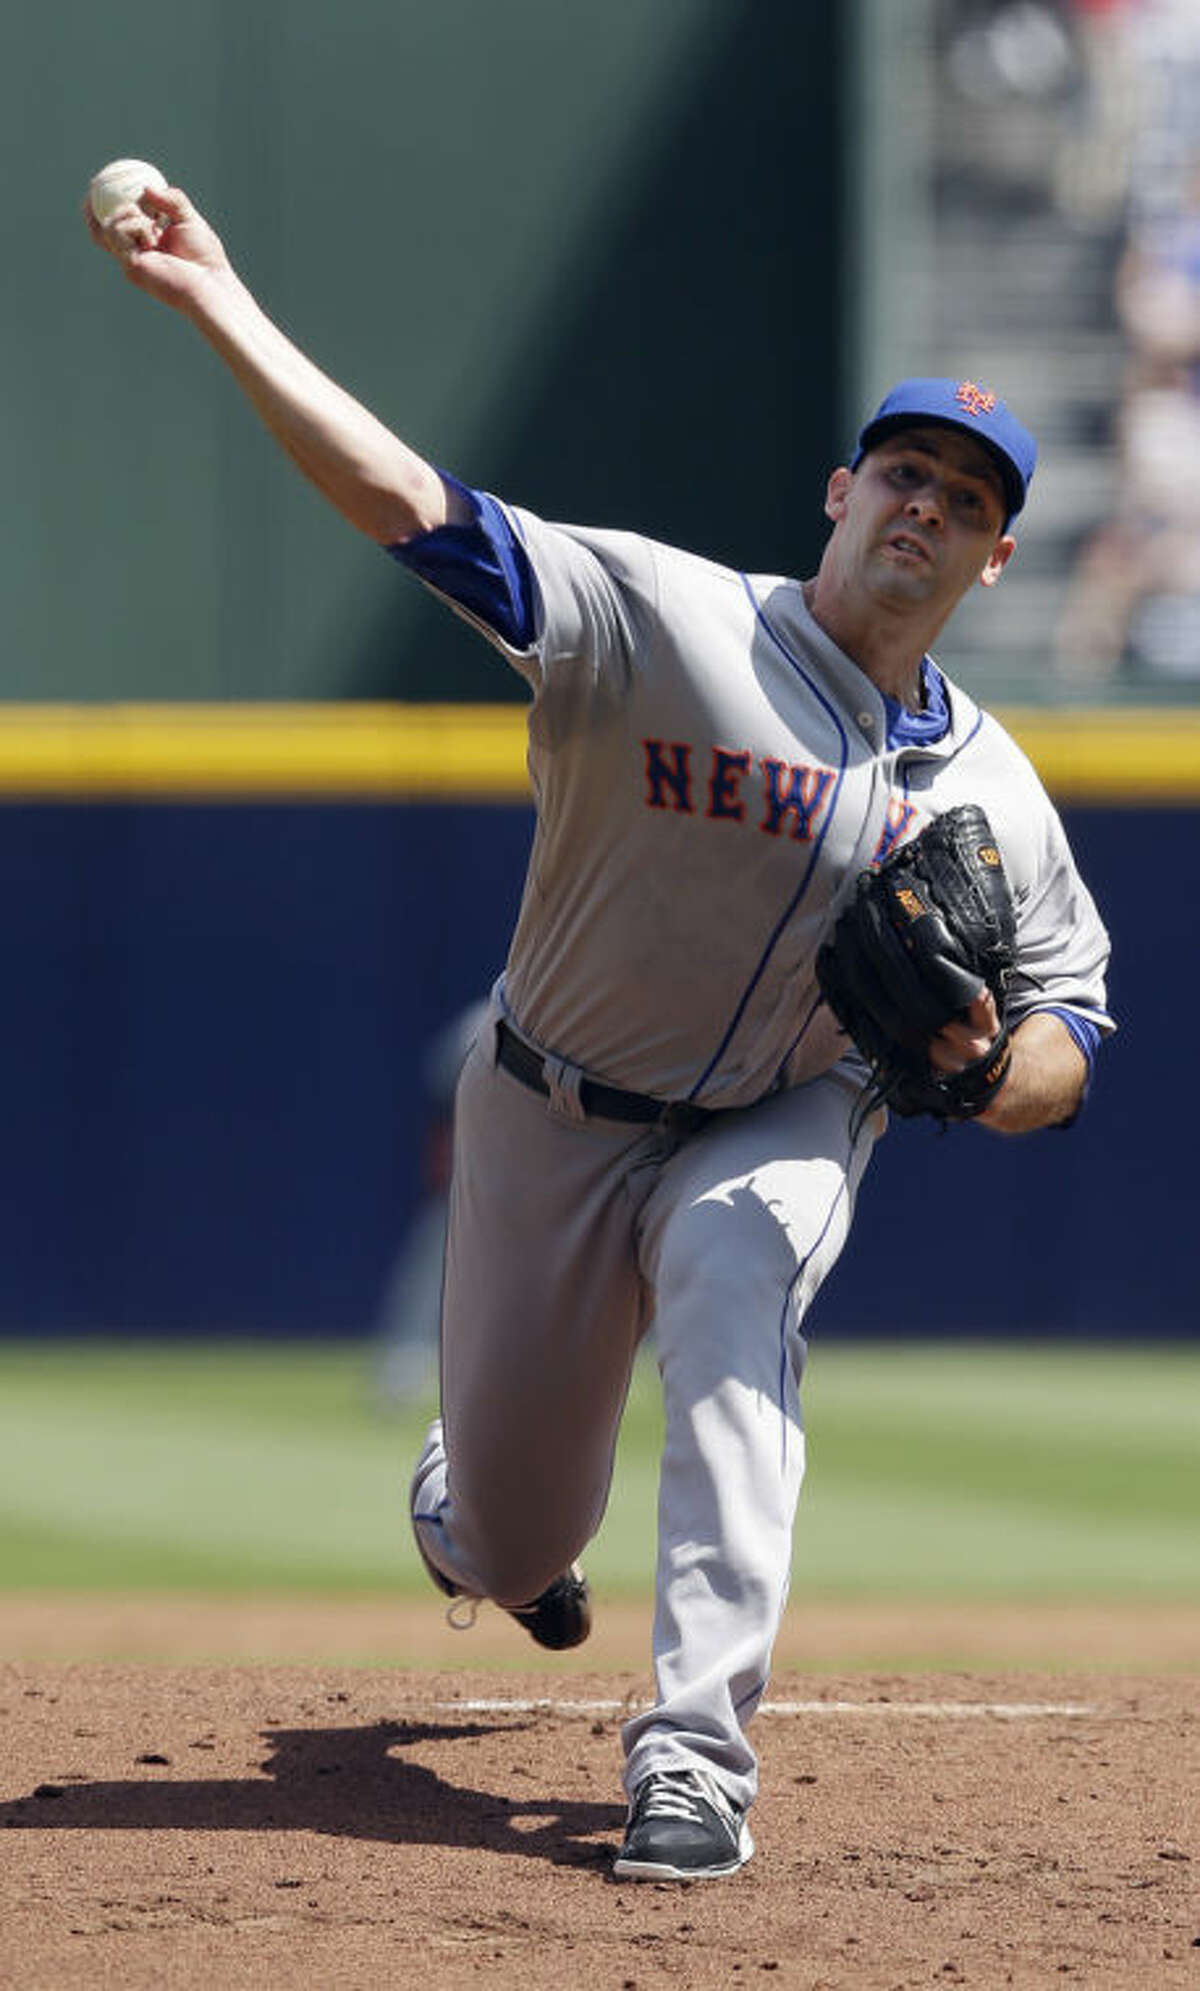 New York Mets starting pitcher Dillon Gee (35) works against the Atlanta Braves in the first inning of a baseball game Wednesday, Sept. 4, 2013 in Atlanta. (AP Photo/John Bazemore)